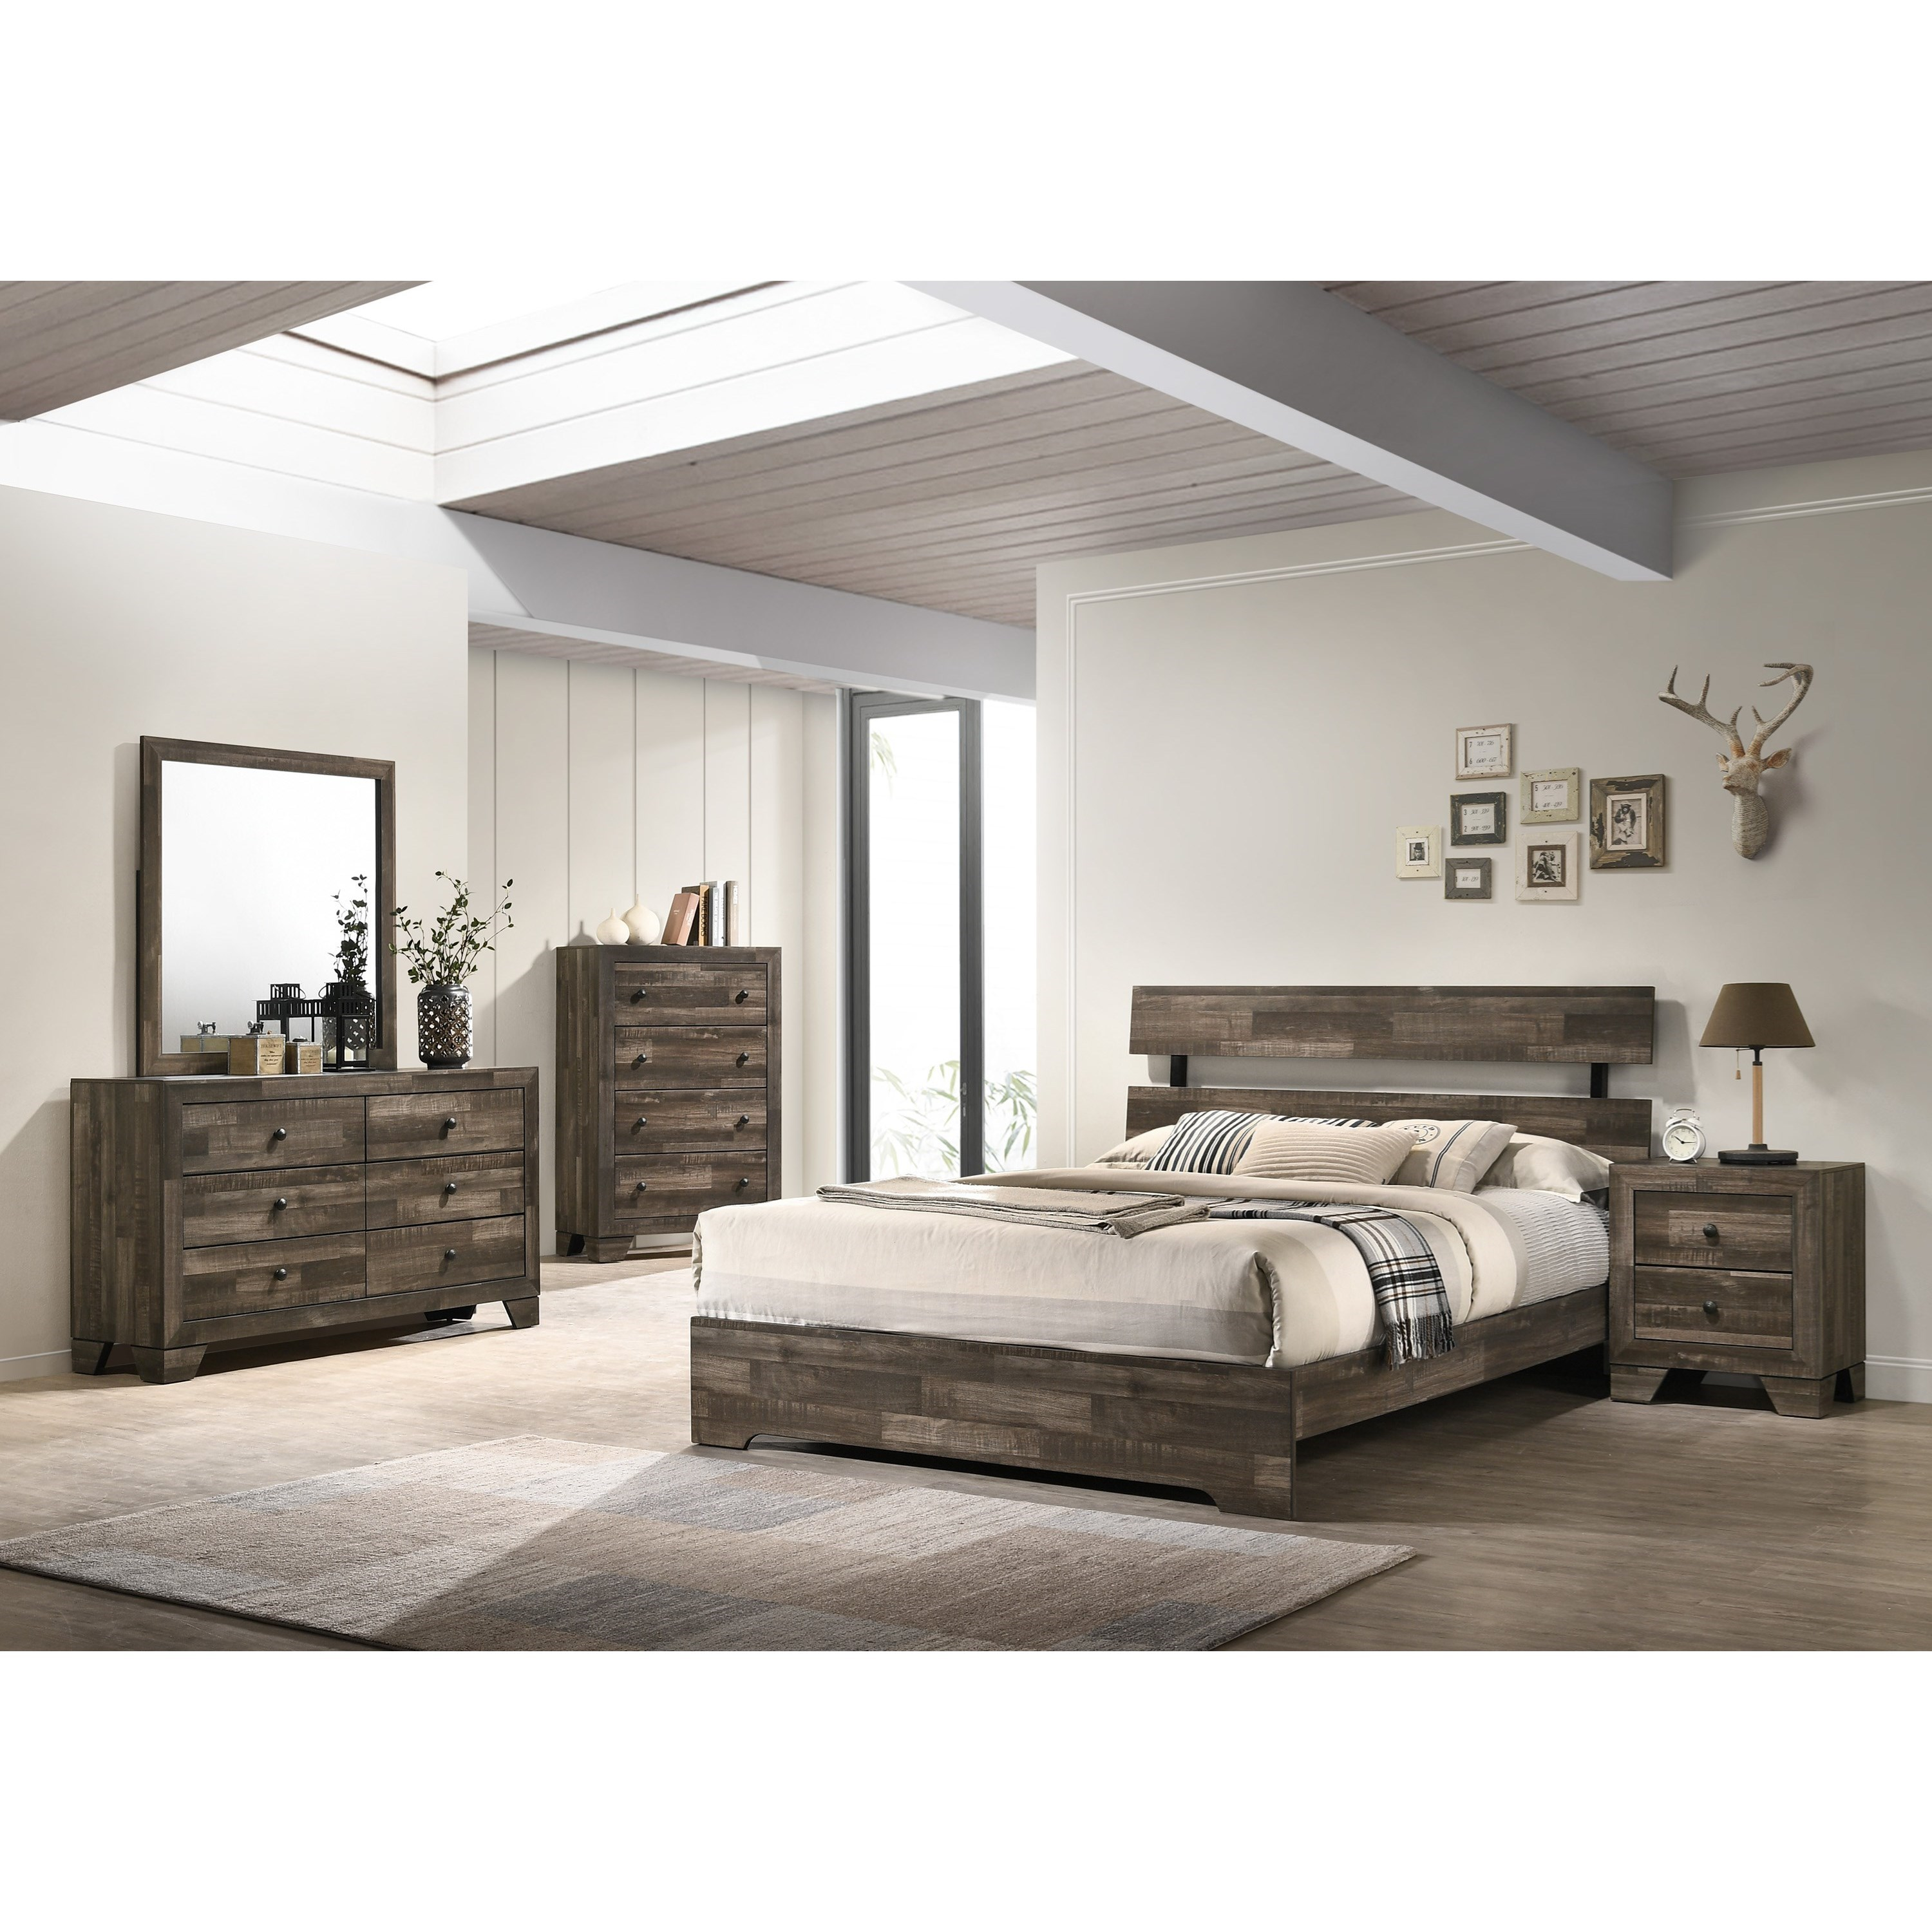 Atticus King Bedroom Group by Crown Mark at Darvin Furniture